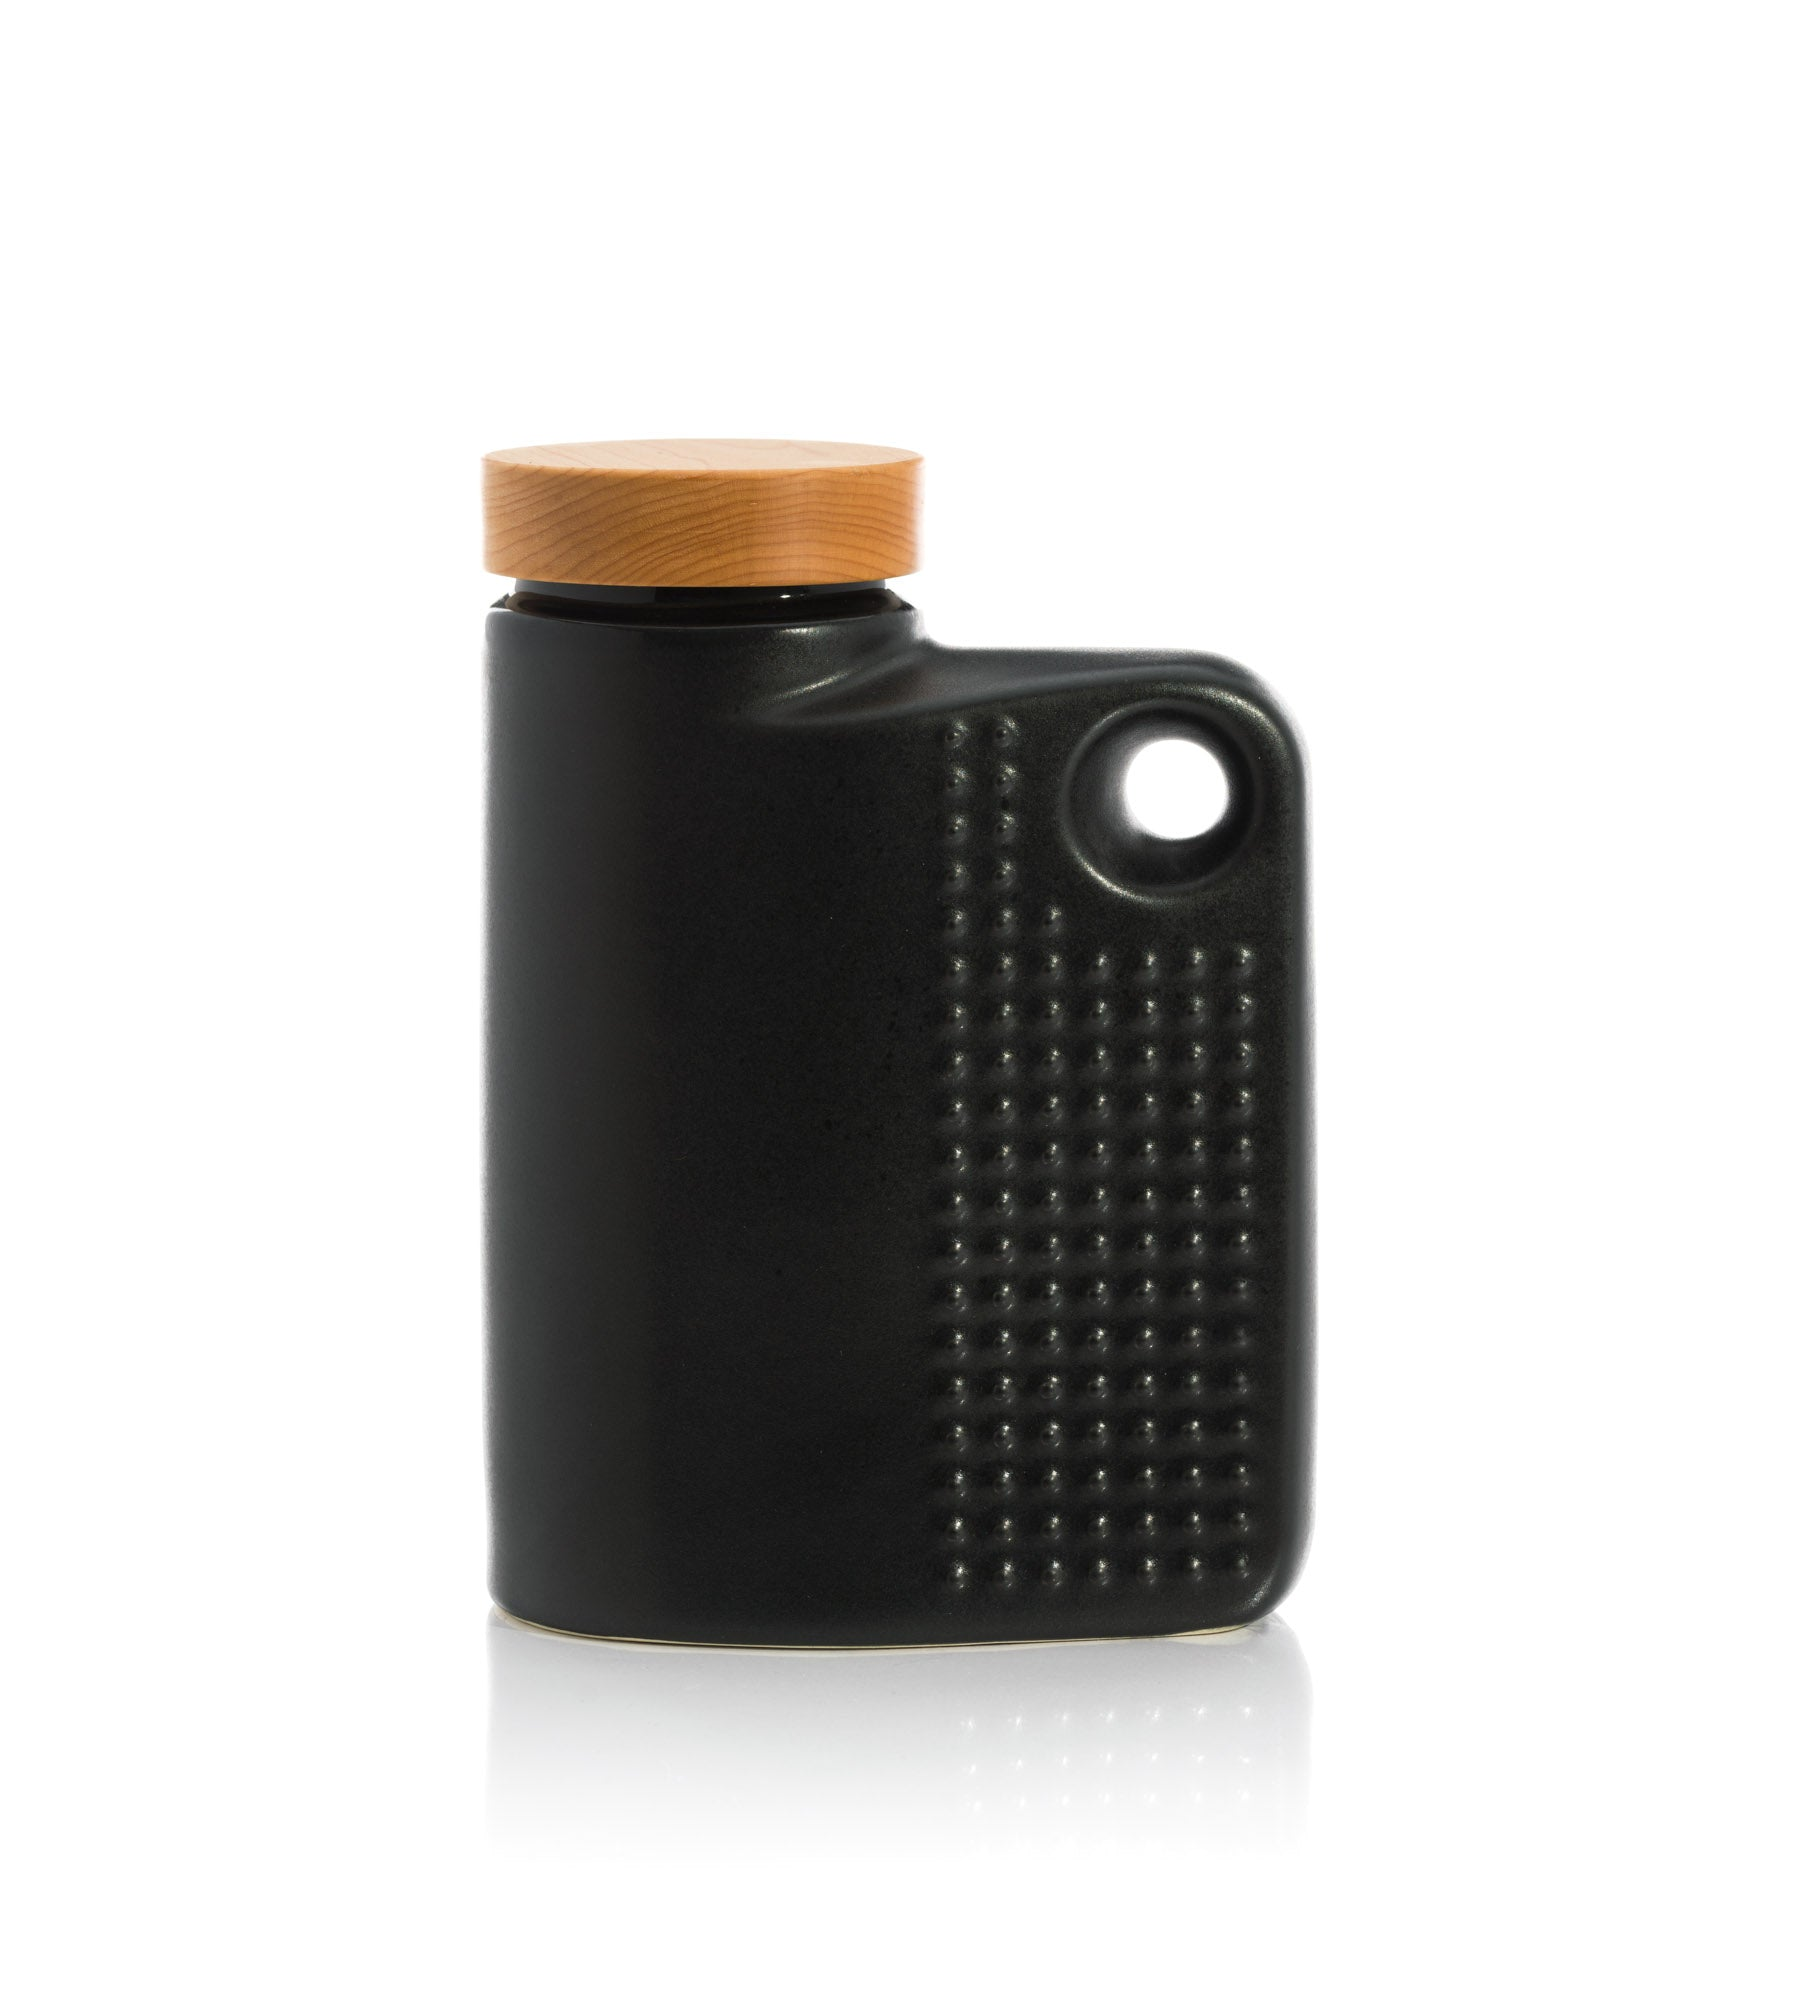 64oz Canister - Satin Black